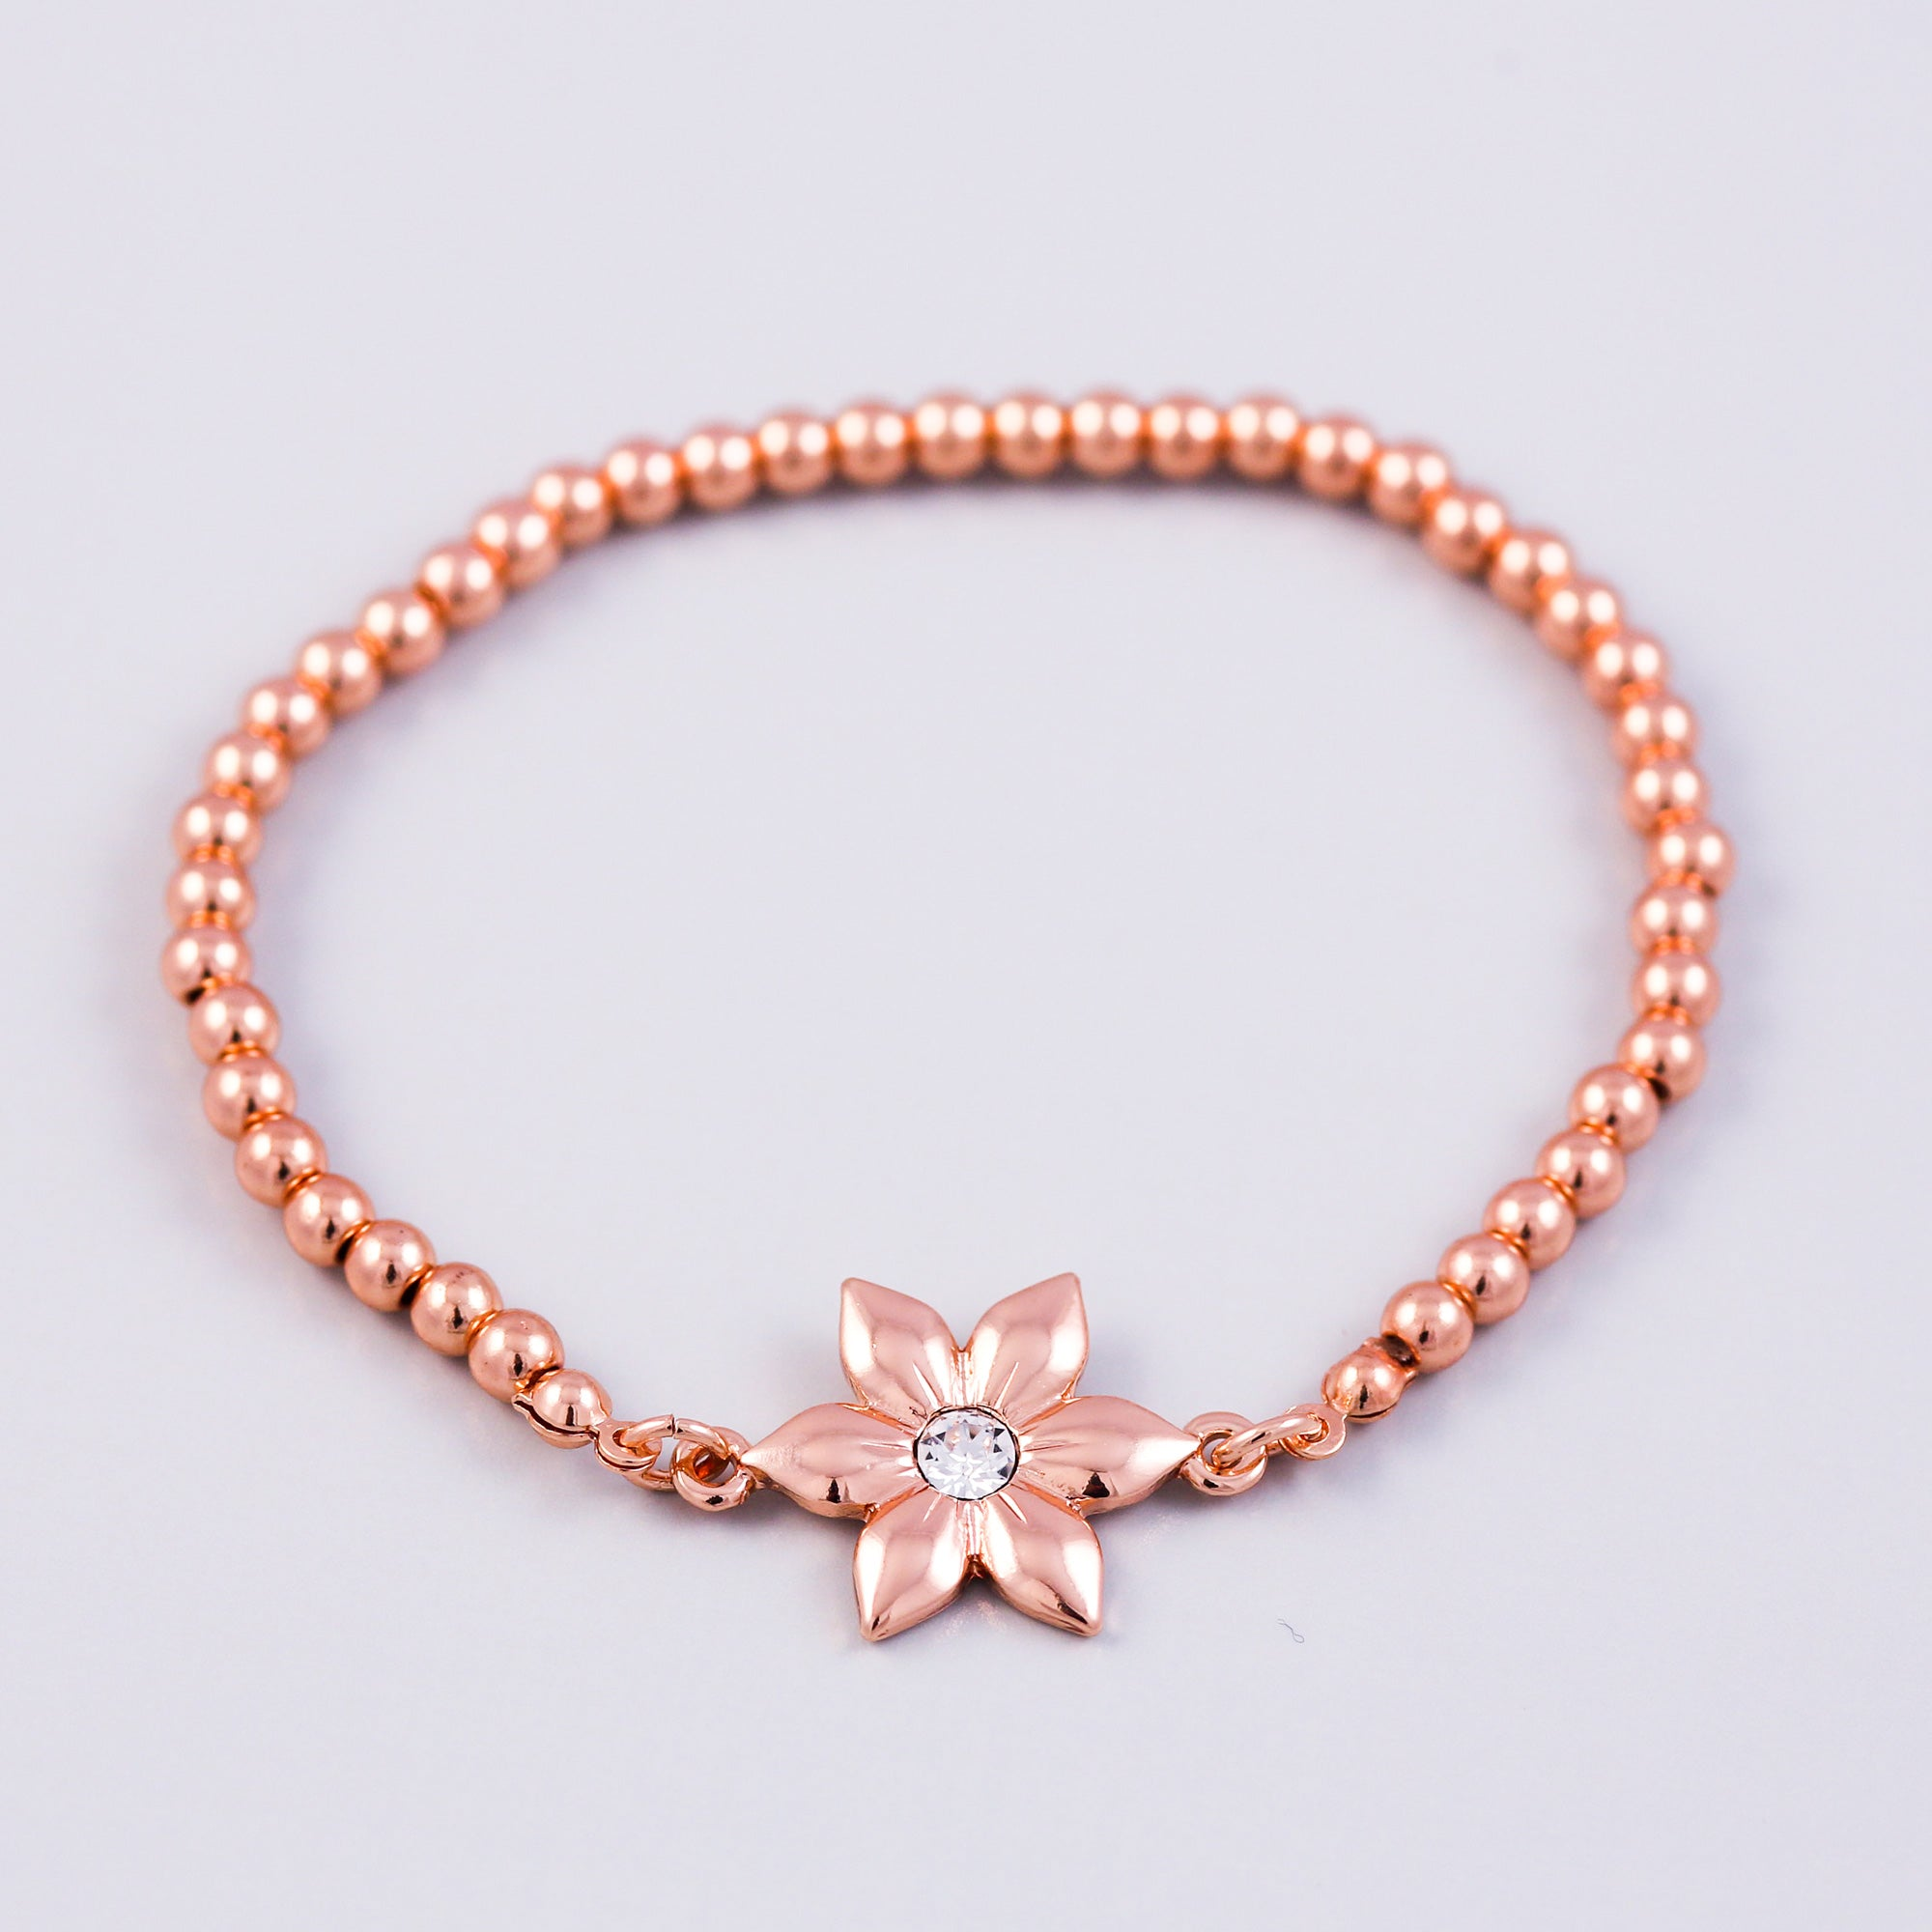 Rose Gold Flower & Metallic Bead Bridal Bracelet